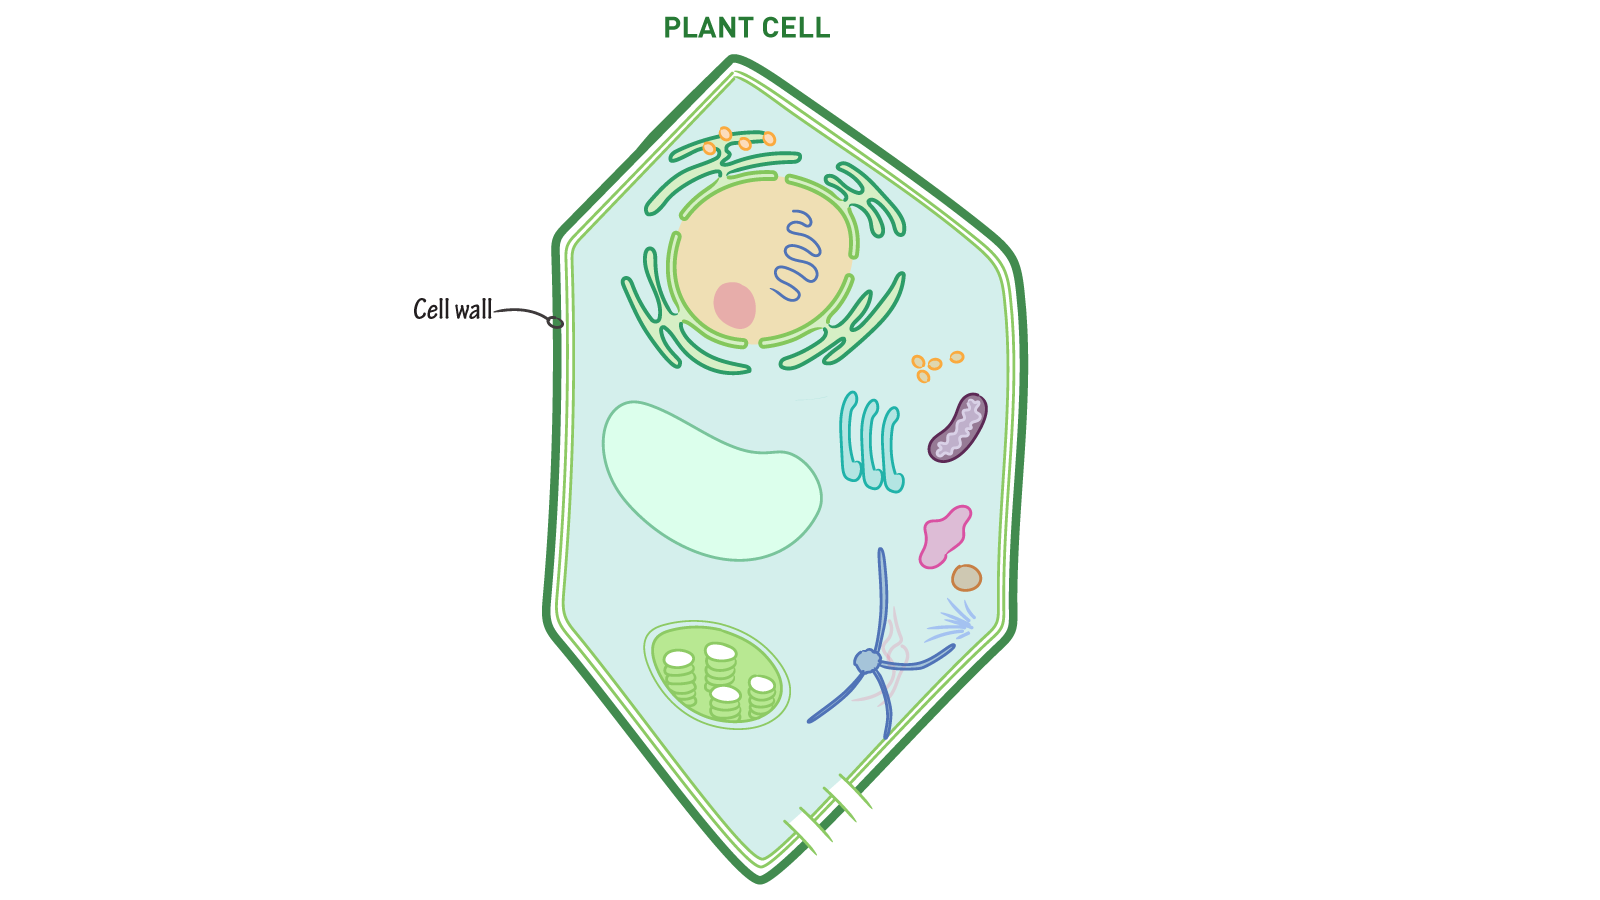 Plant cell and animal cell pest control worker cover letter what structure protects plant cells from damage and helps them plant vs animal cells pop quiz what structure found in plant cells but not animal cells helps pooptronica Choice Image